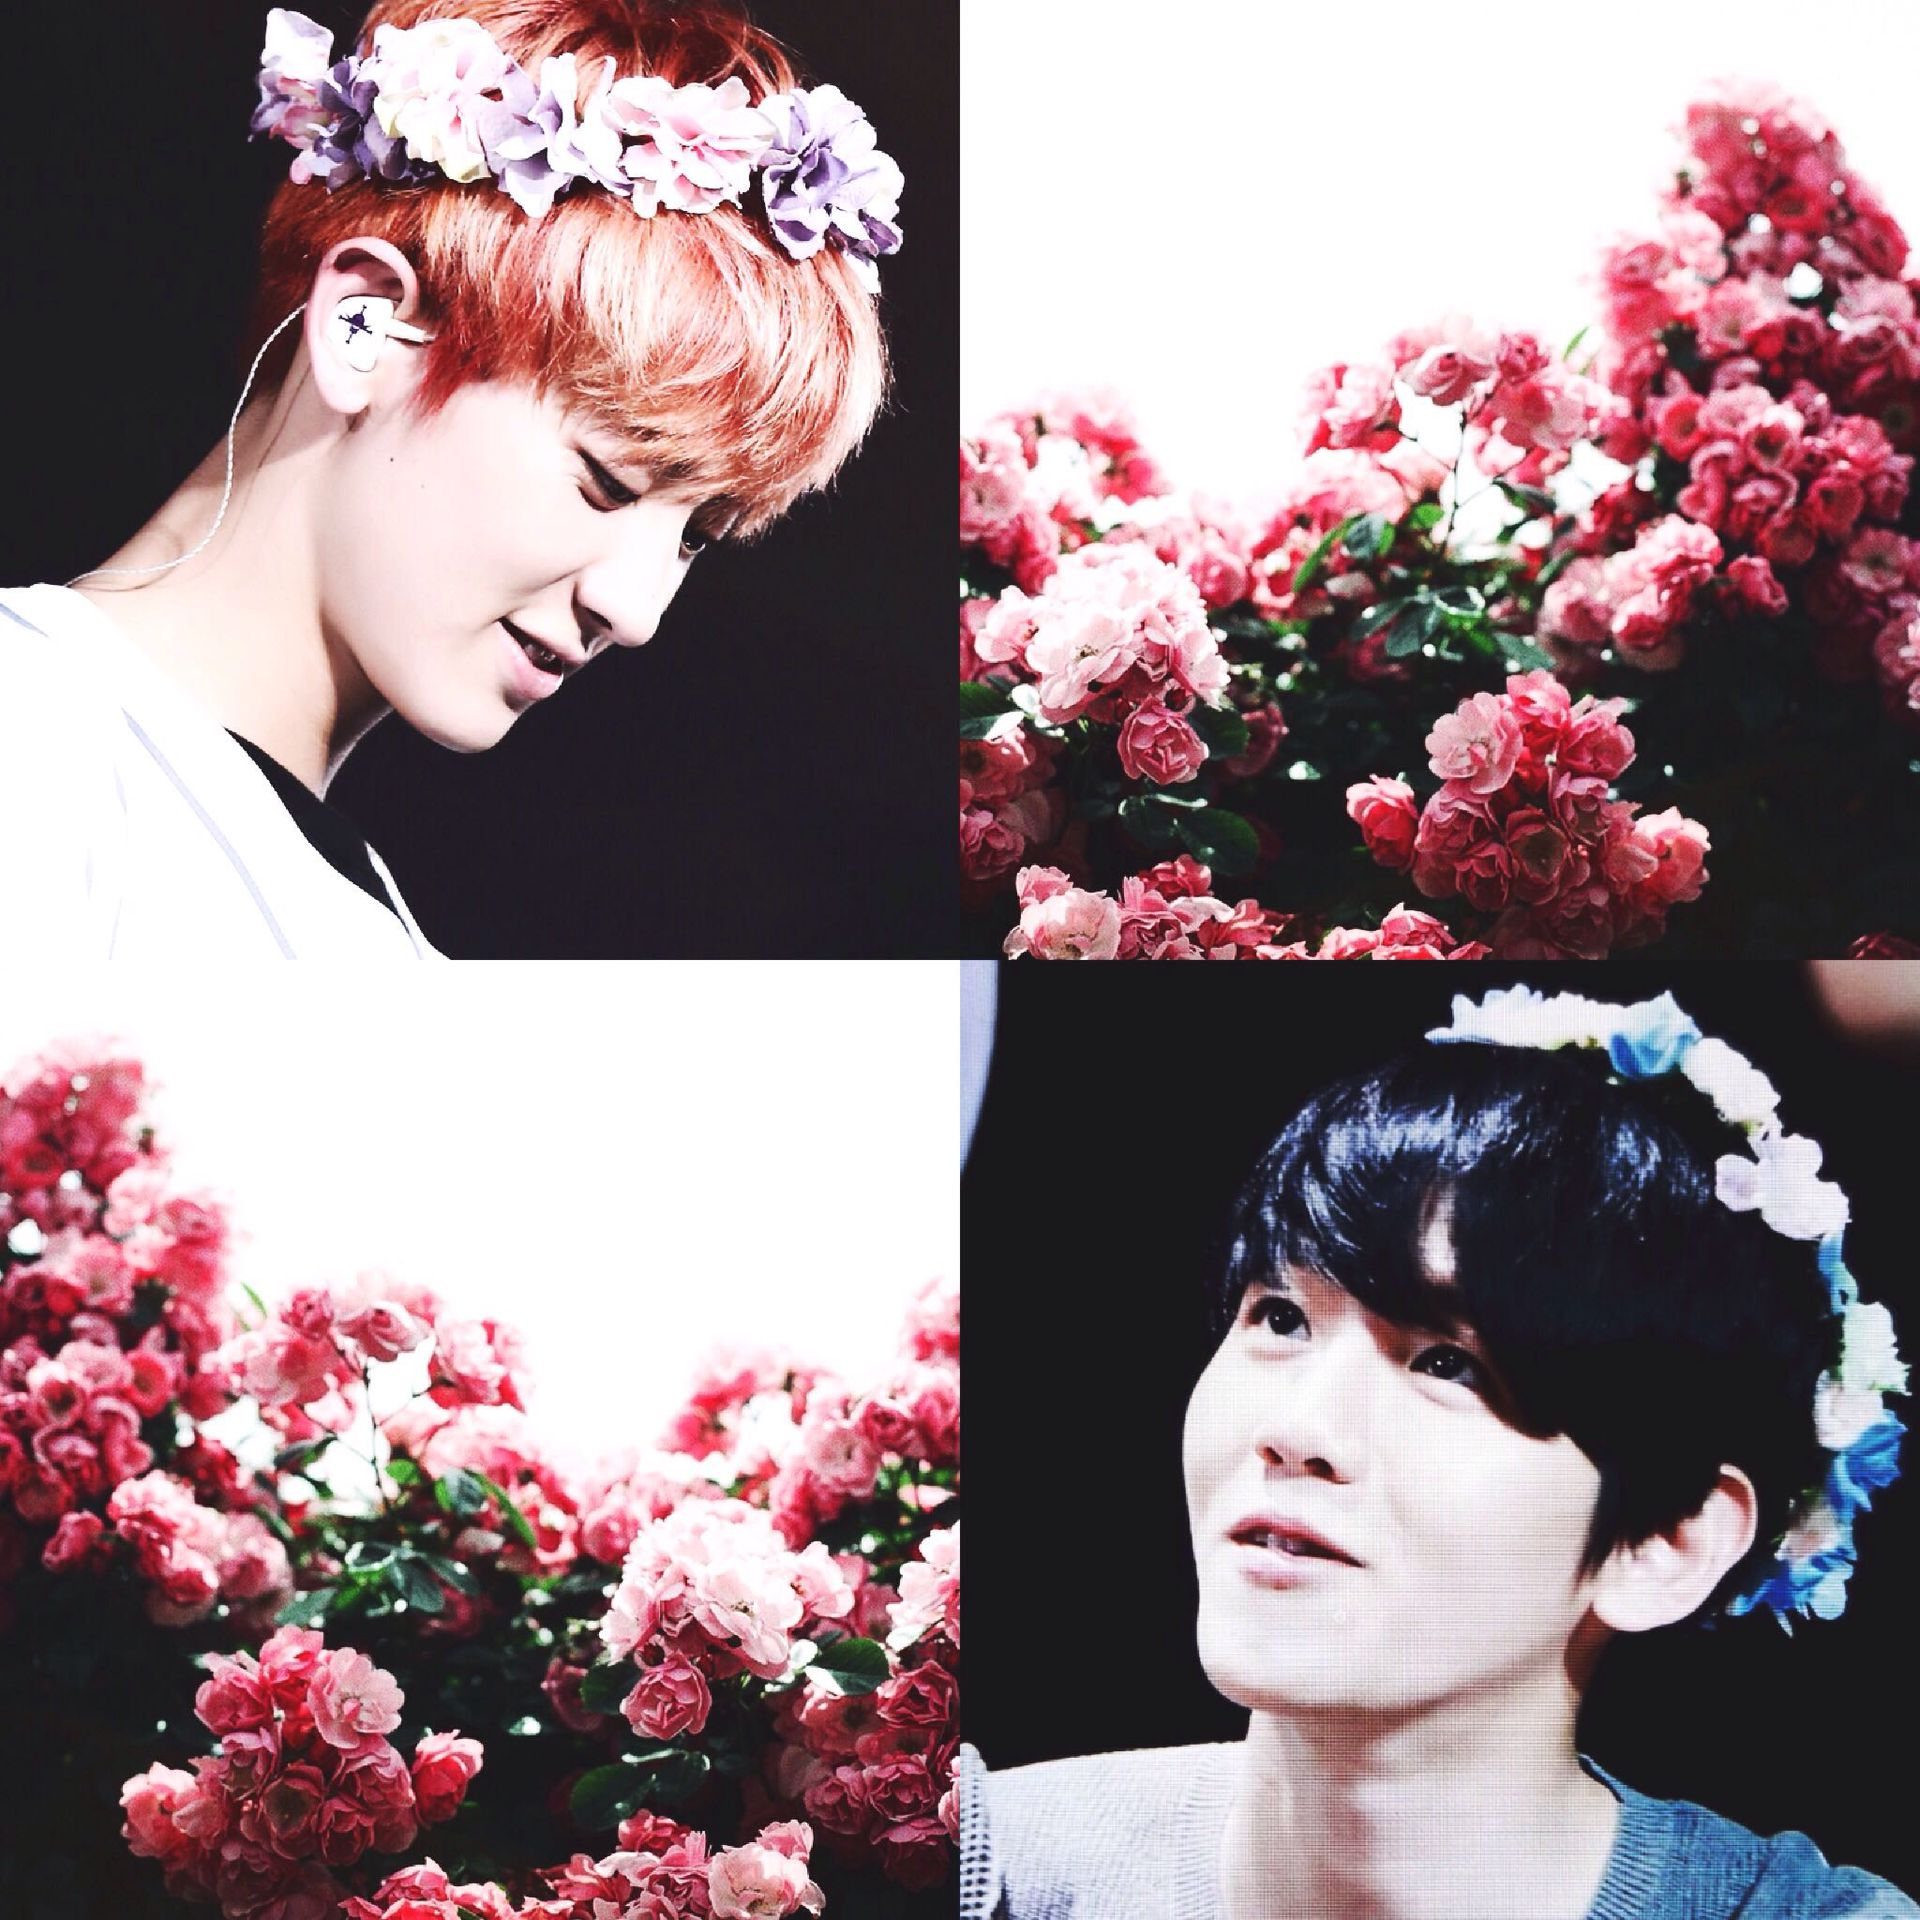 Exo Chanbaek One Only 16 Smile Flower Laughter Wattpad